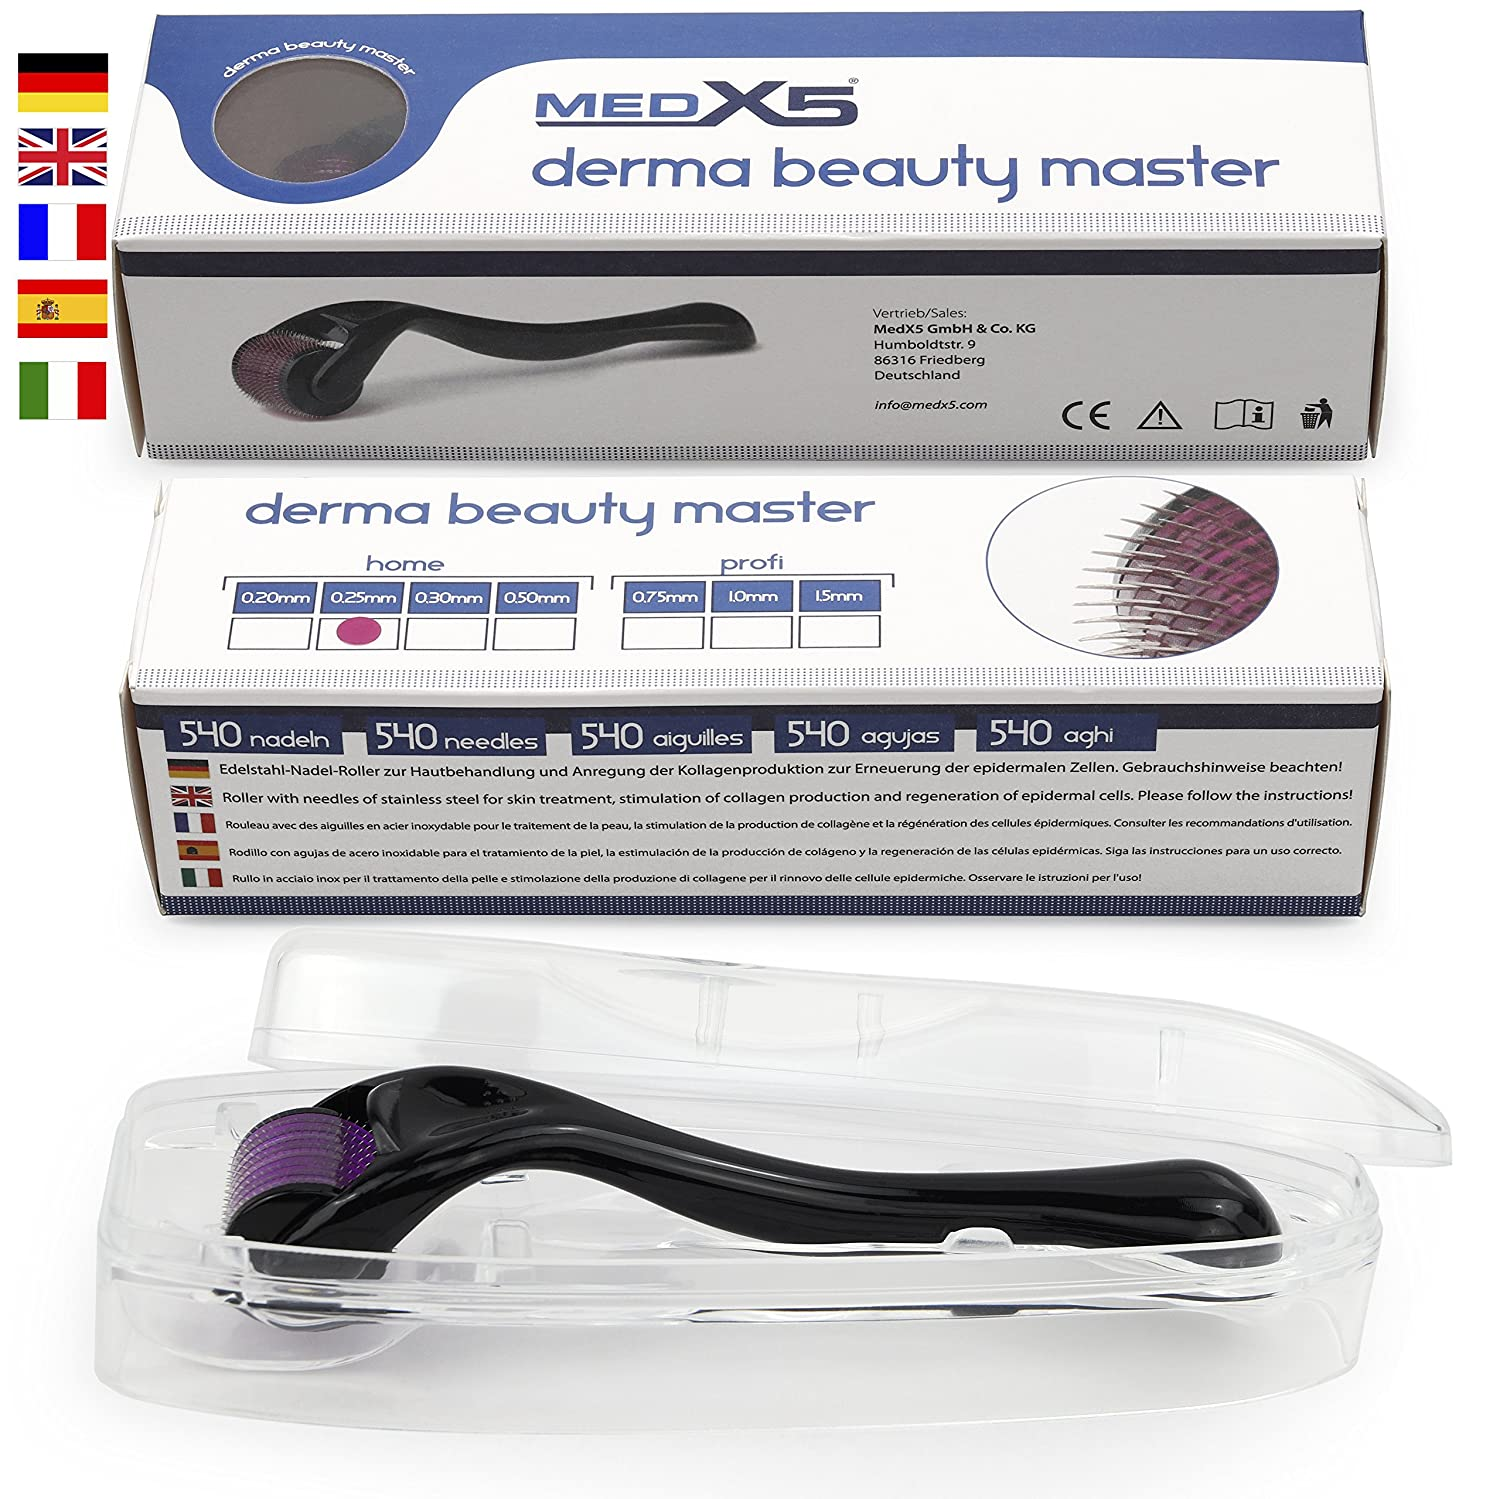 MedX5 1,5 mm Dermaroller (stainless steel needles), Derma roller against deep scars and severe cellulite, Medical Device Class I